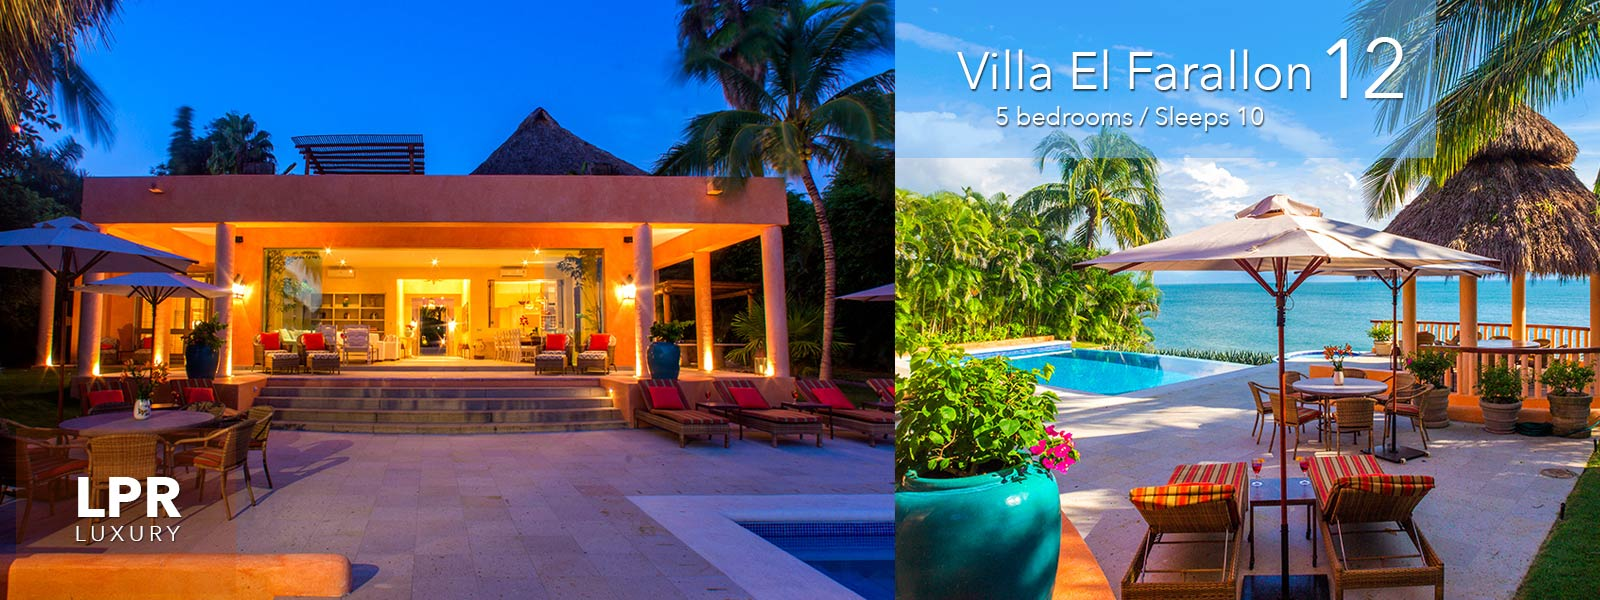 Villa El Farallon 12 - Punta de Mita luxury real estate and vacation rental villa